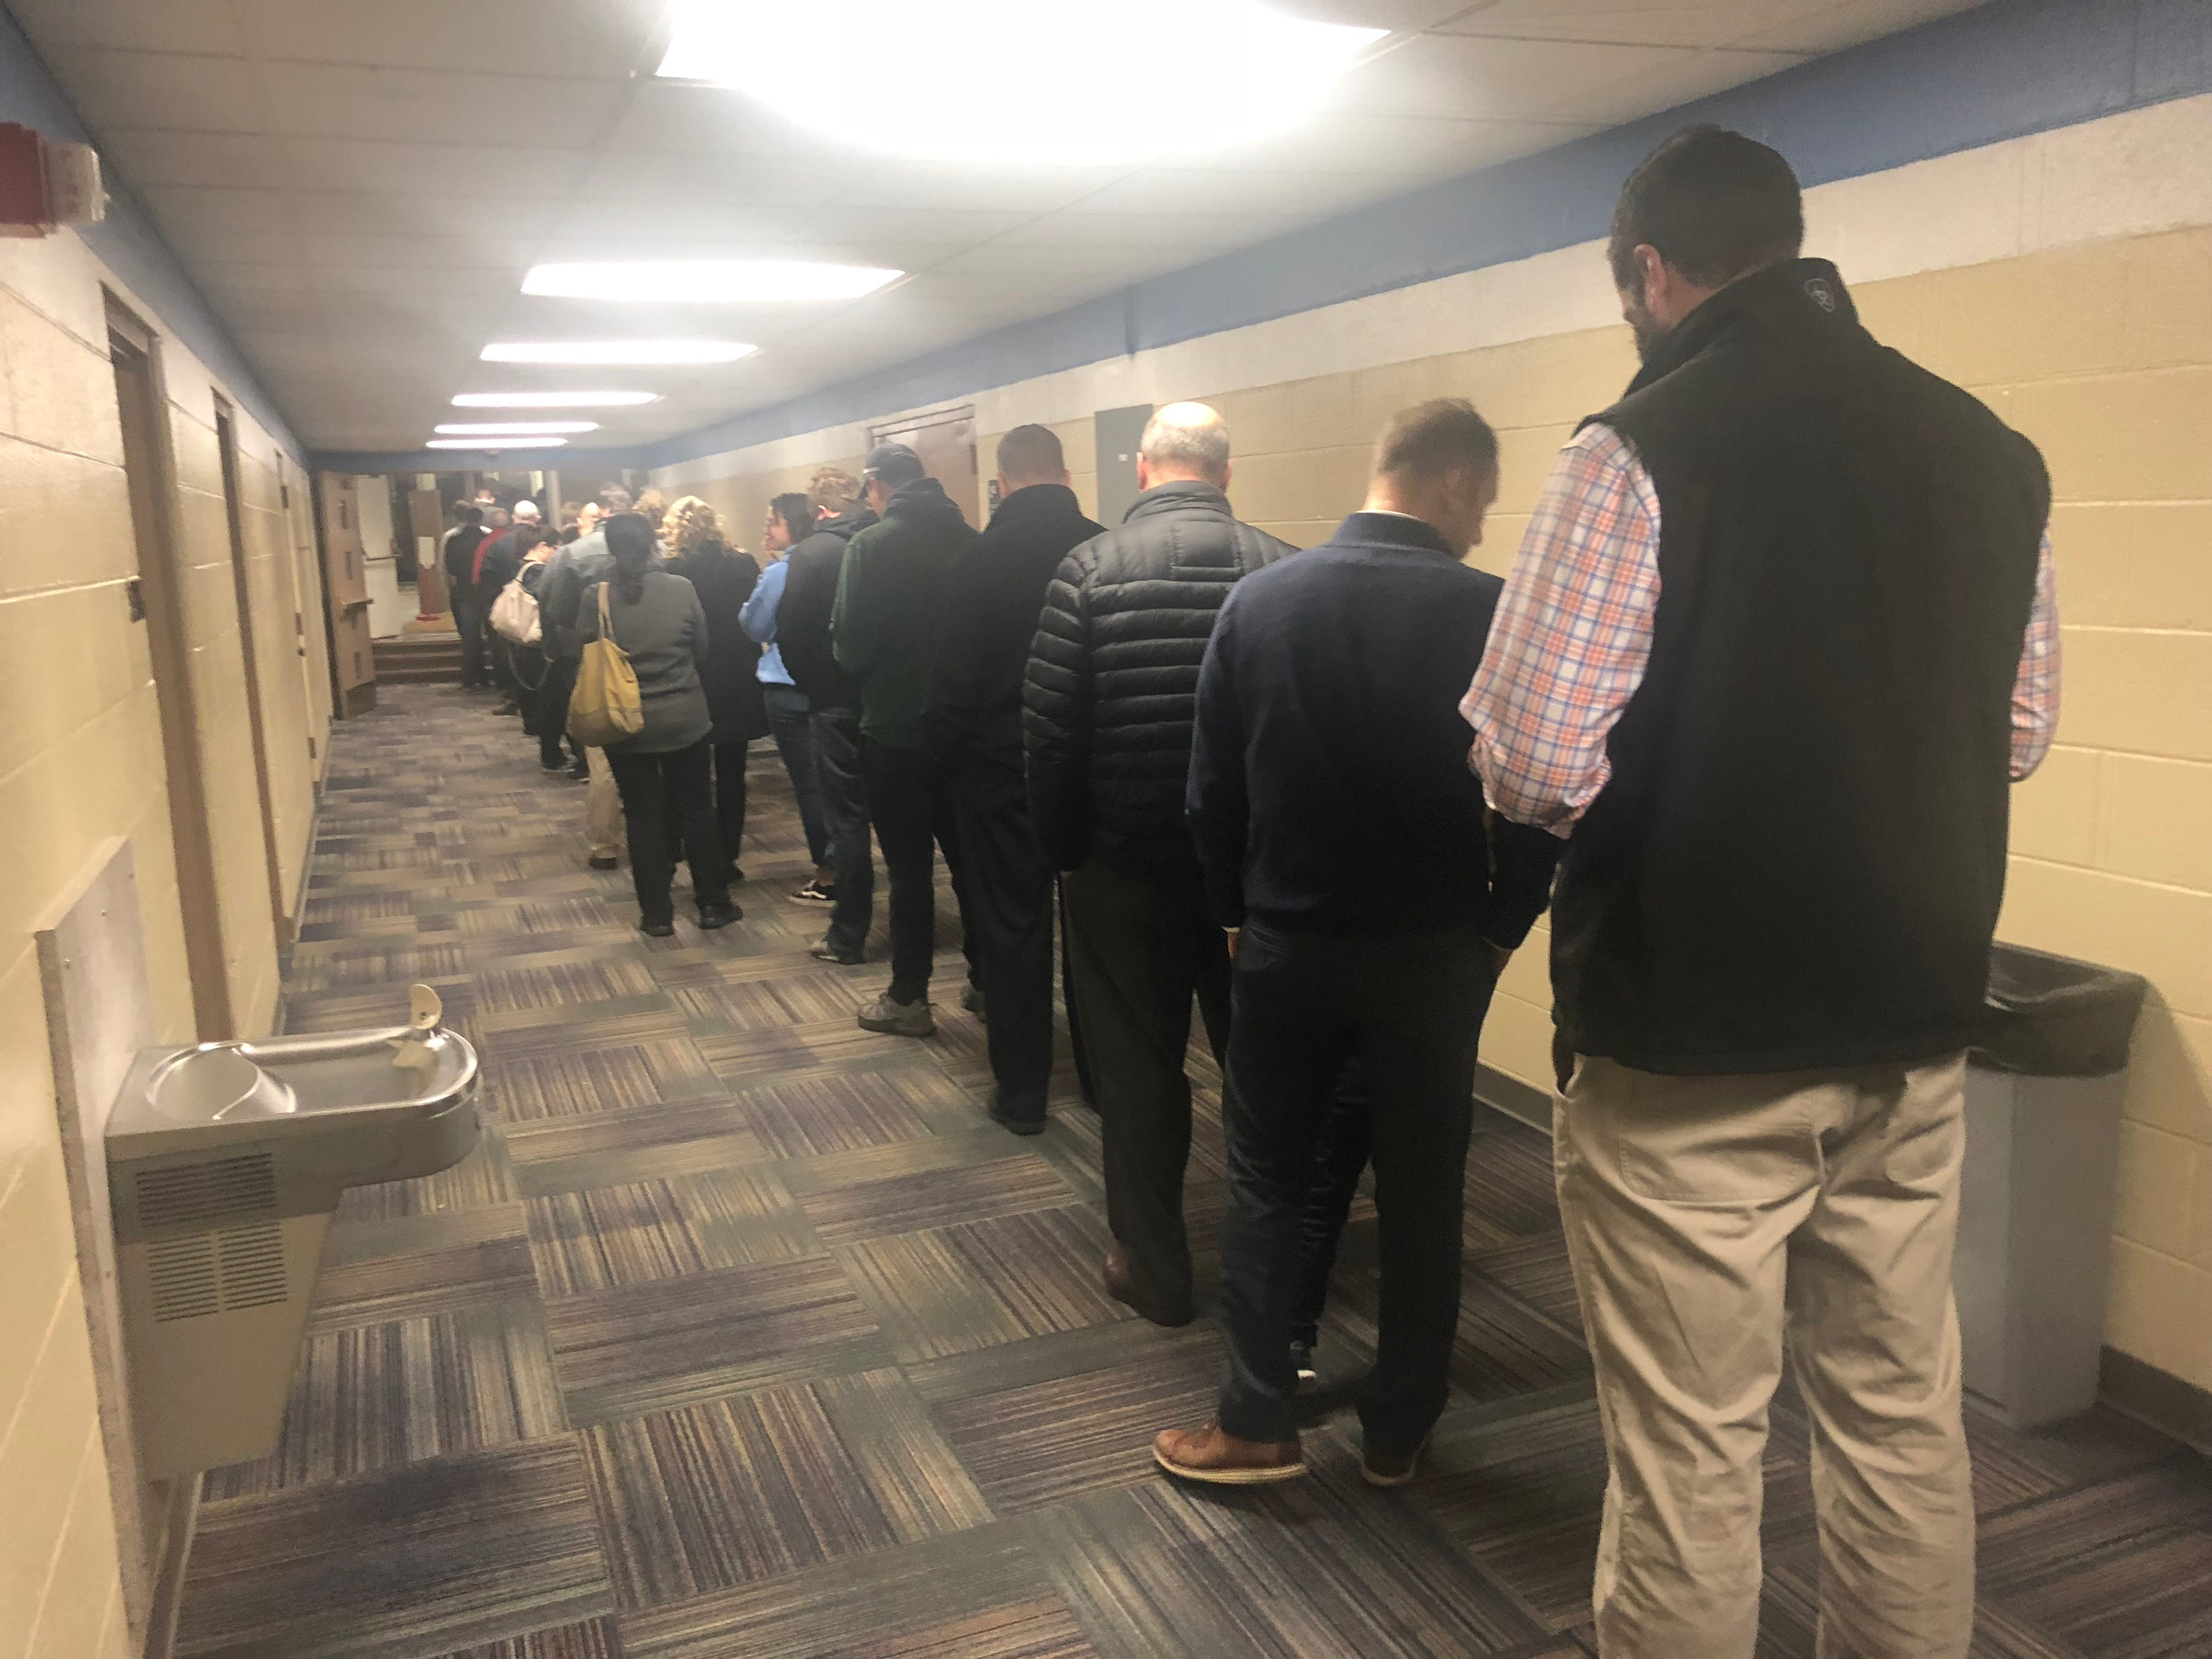 Voters line up to cast their ballots in precinct 3 at the Brighton Educational Community Center building on Tuesday morning, Nov. 6, 2018.